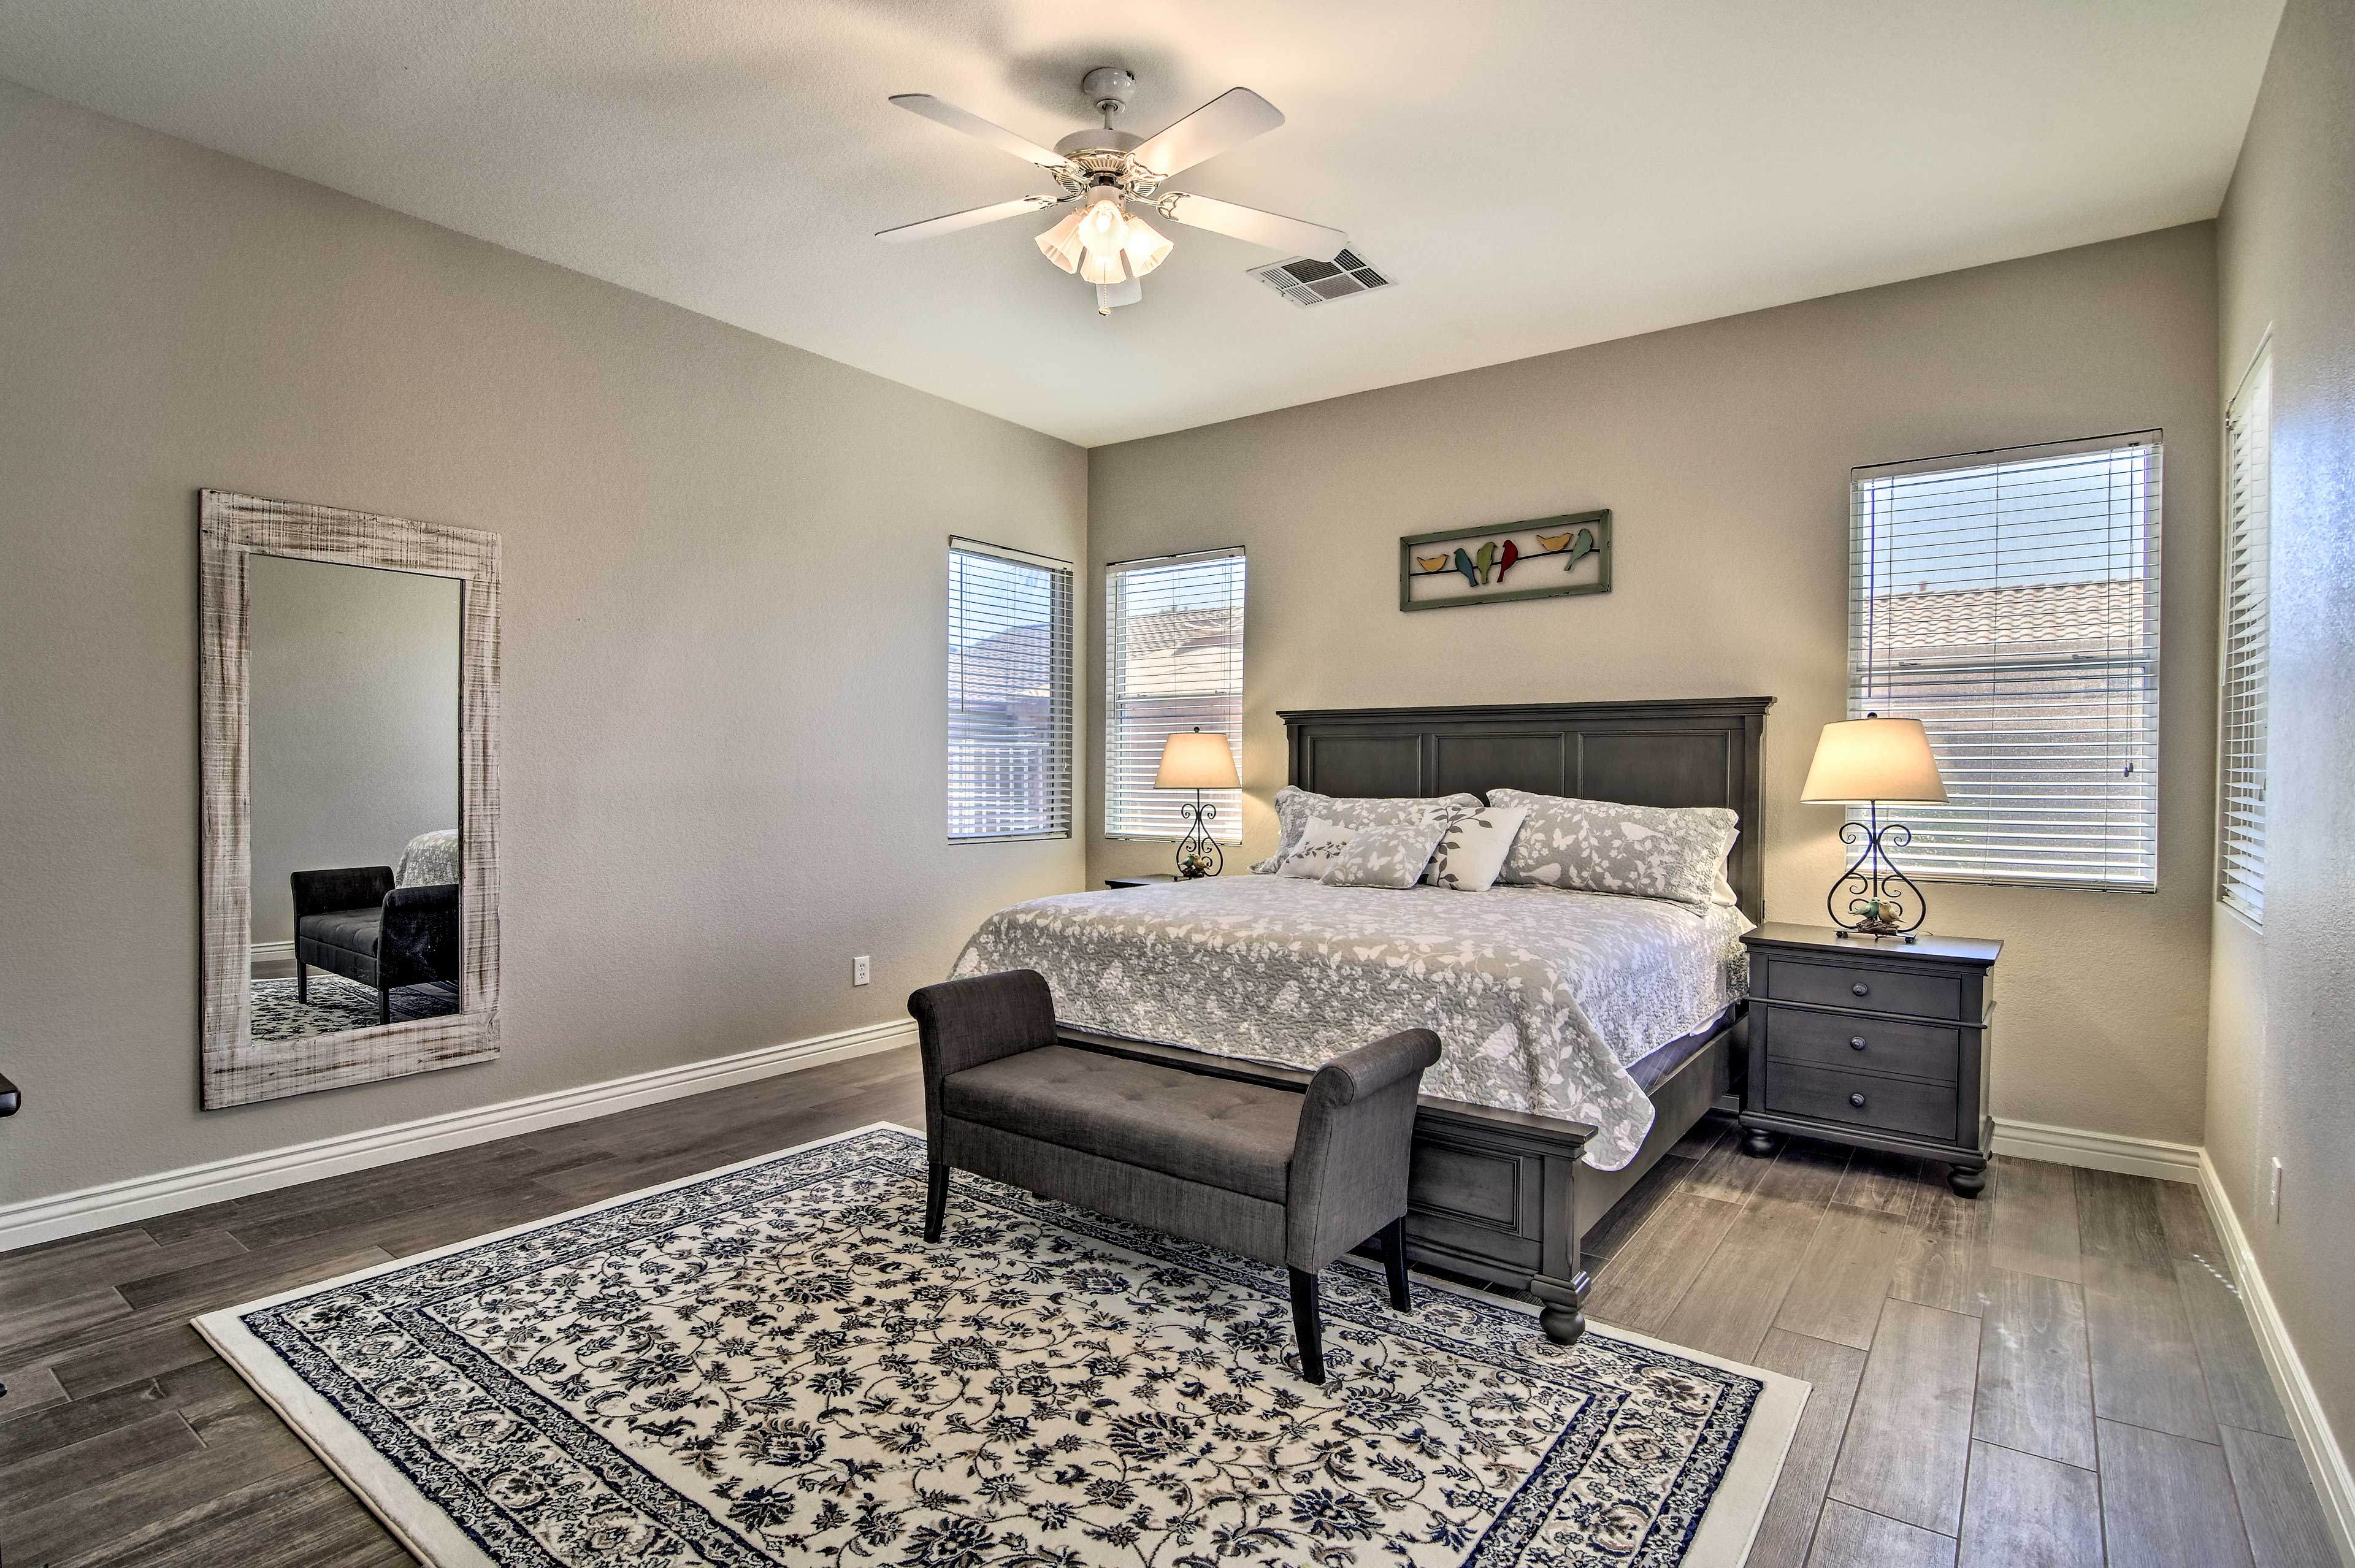 Sleep like a baby on the king-sized mattress in the master bedroom.